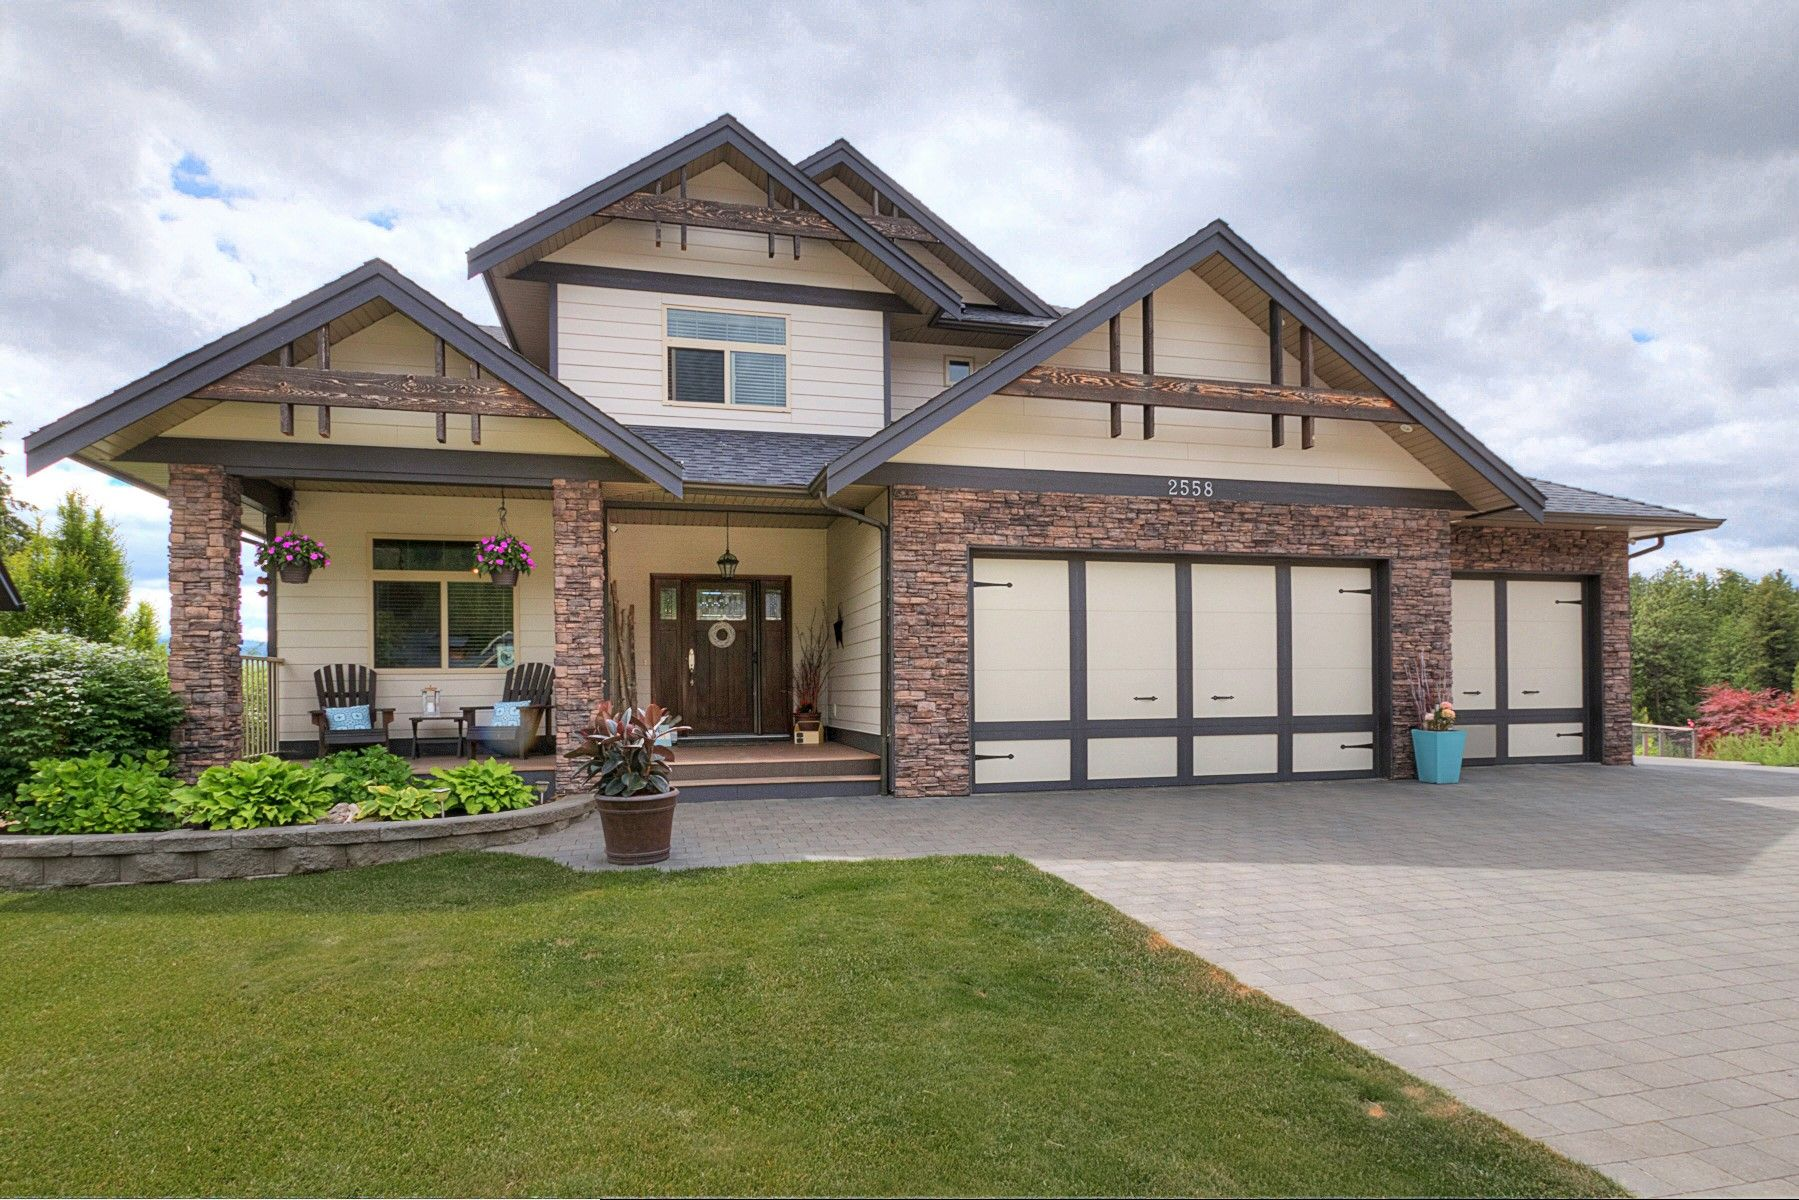 Main Photo: 2558 Pebble place in West Kelowna: Shannon Lake House for sale (Central Okanagan)  : MLS®# 10180242